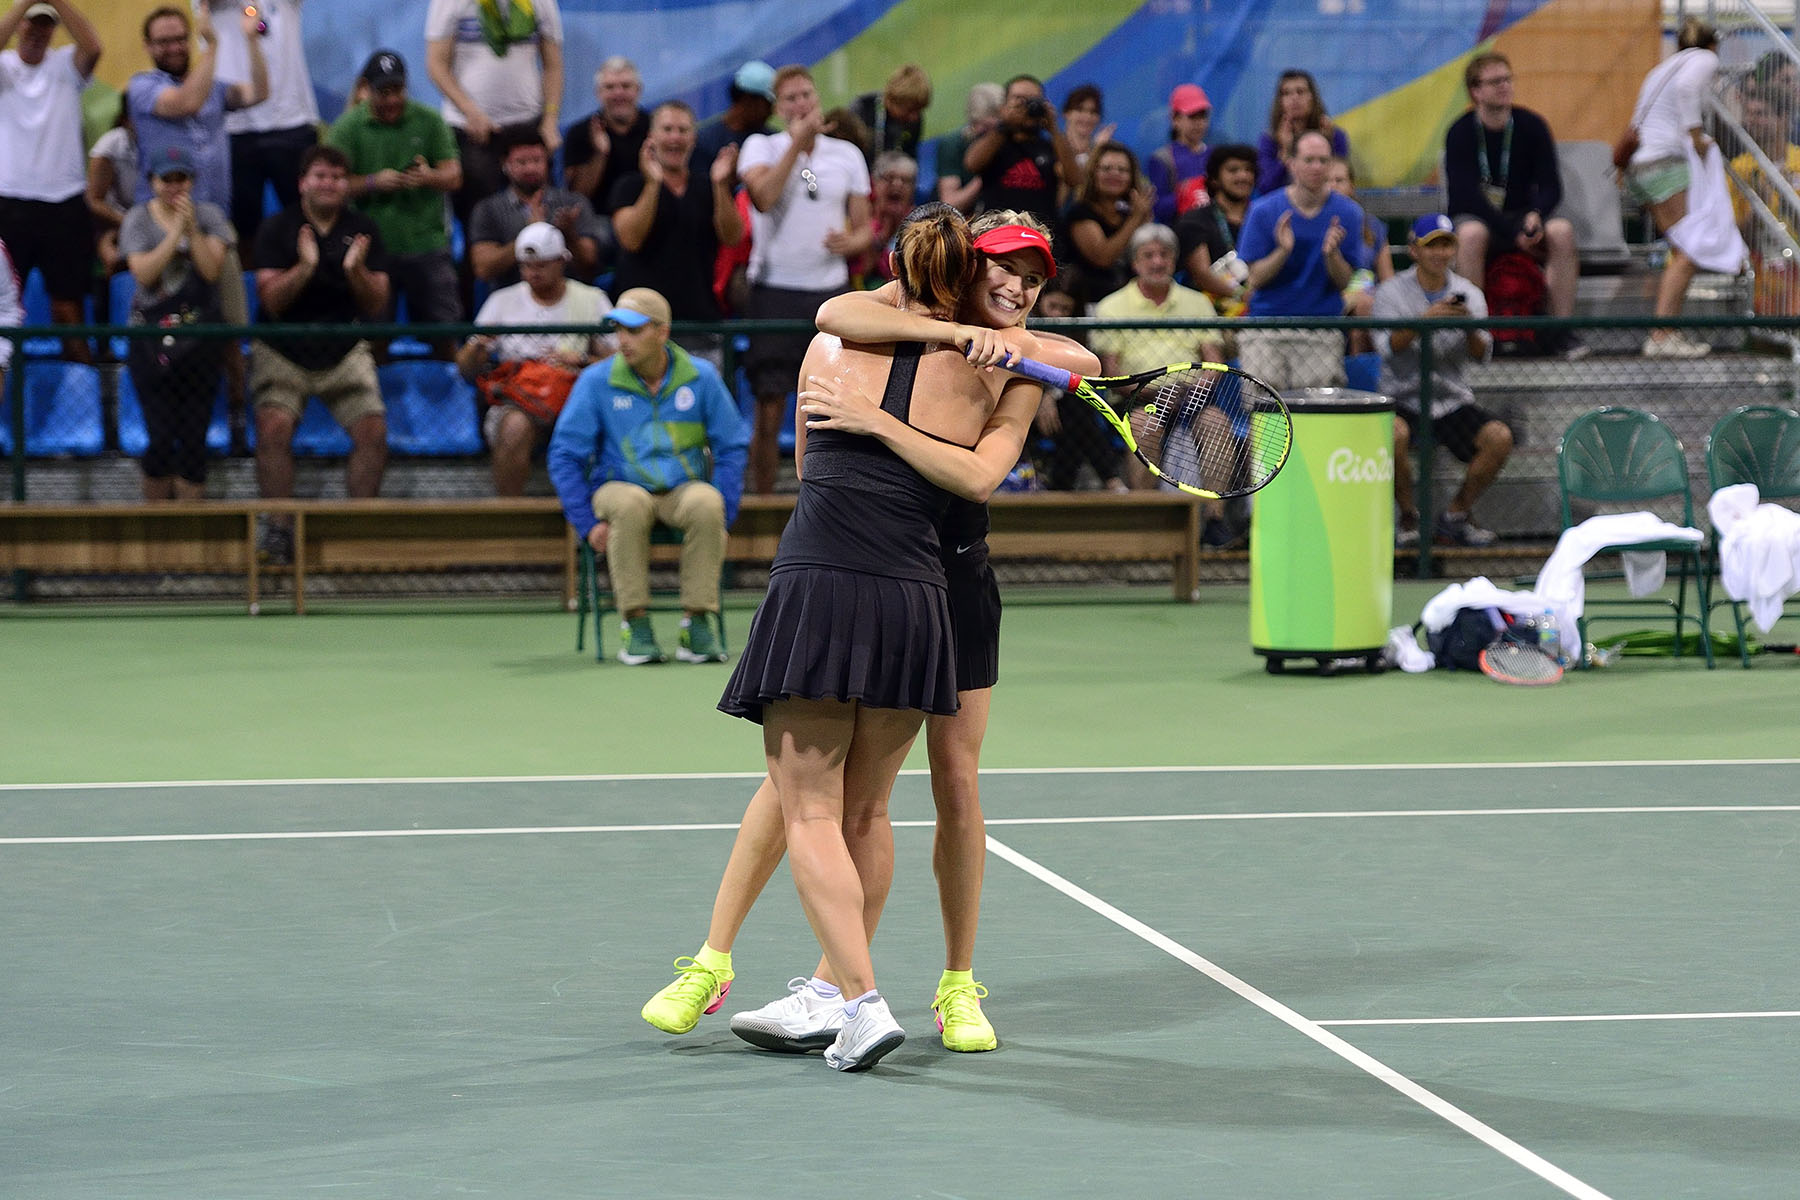 The Canadian duo won this first-round match and celebrated on court.